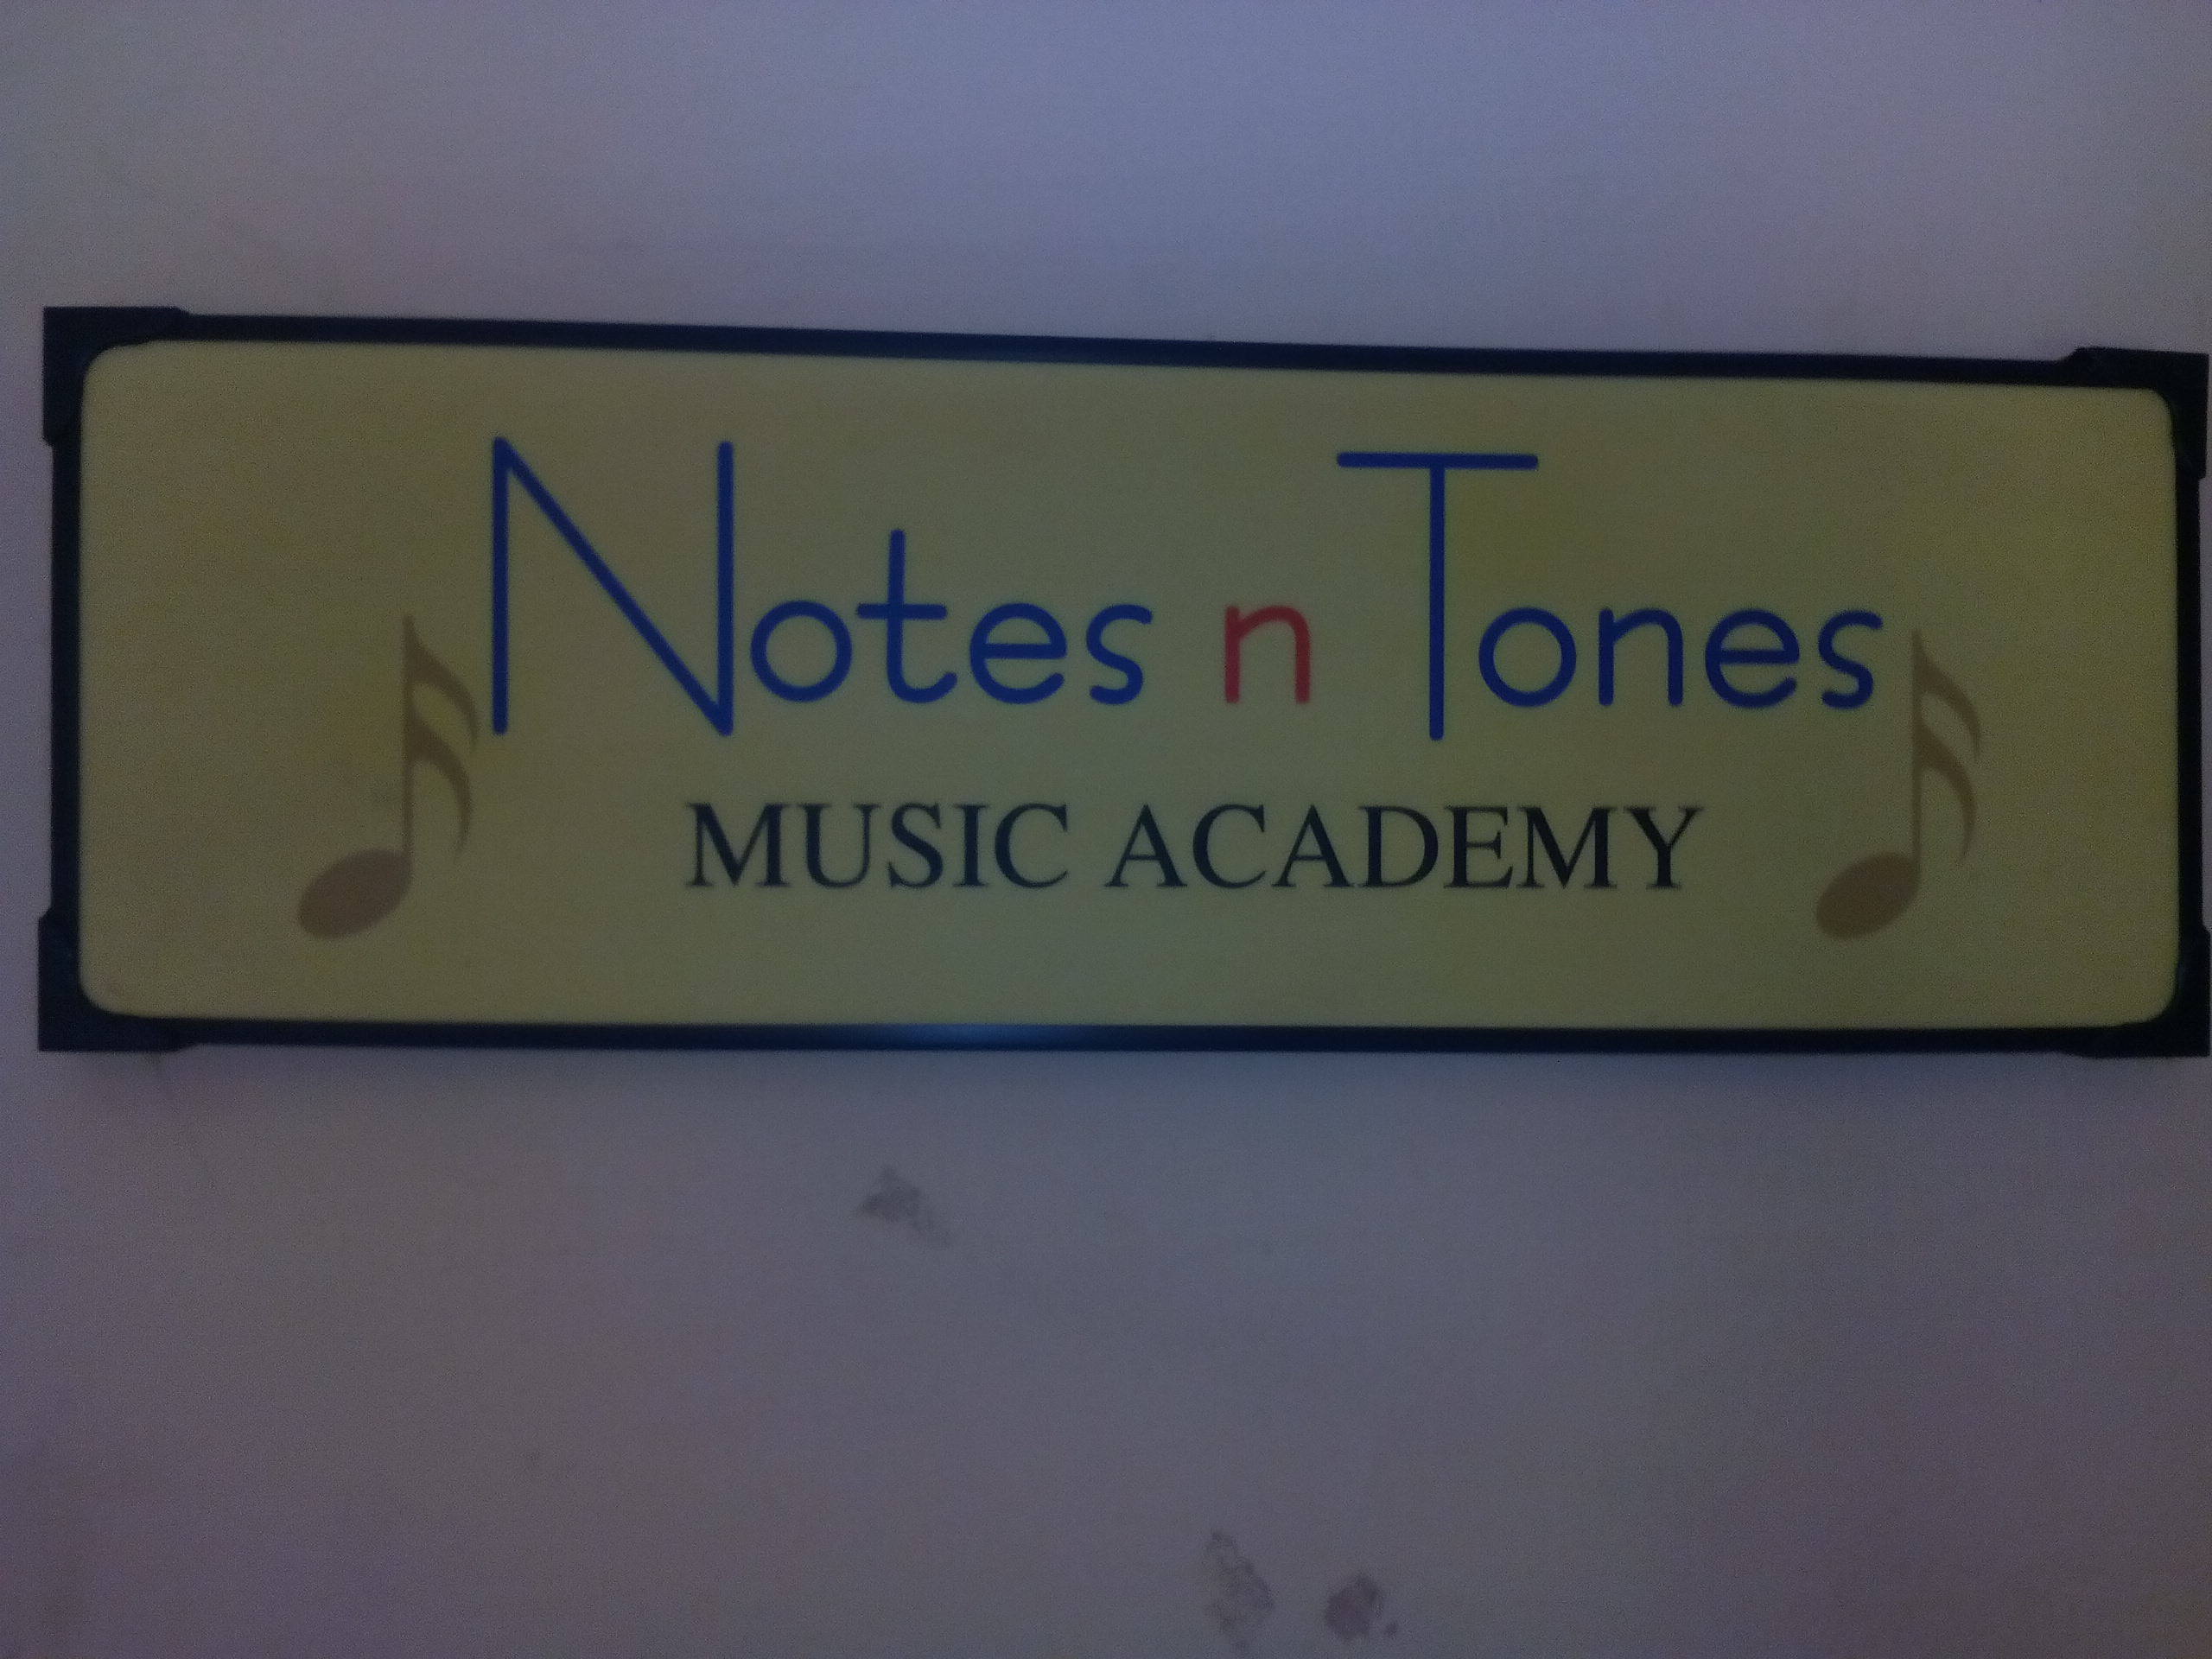 Notes n Tones Music Academy - logo